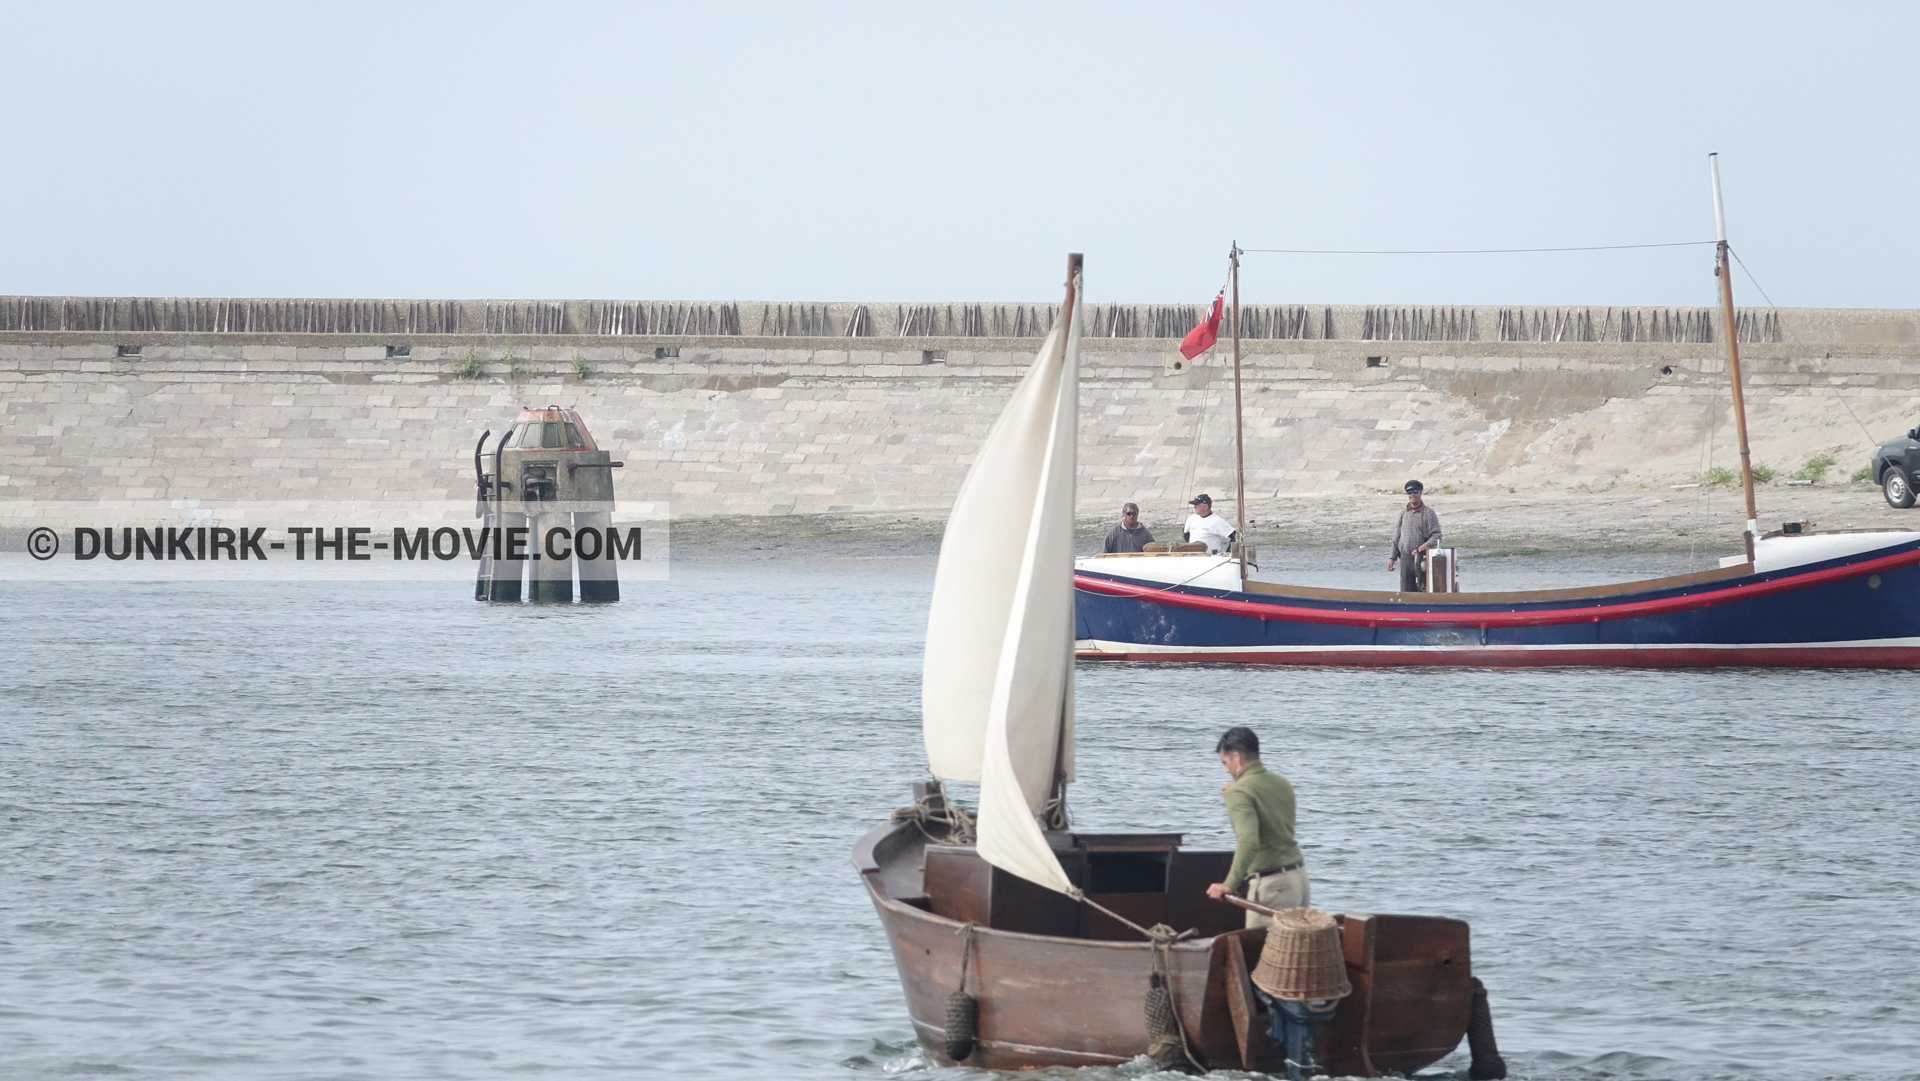 Picture with boat, EST pier, Henry Finlay lifeboat,  from behind the scene of the Dunkirk movie by Nolan